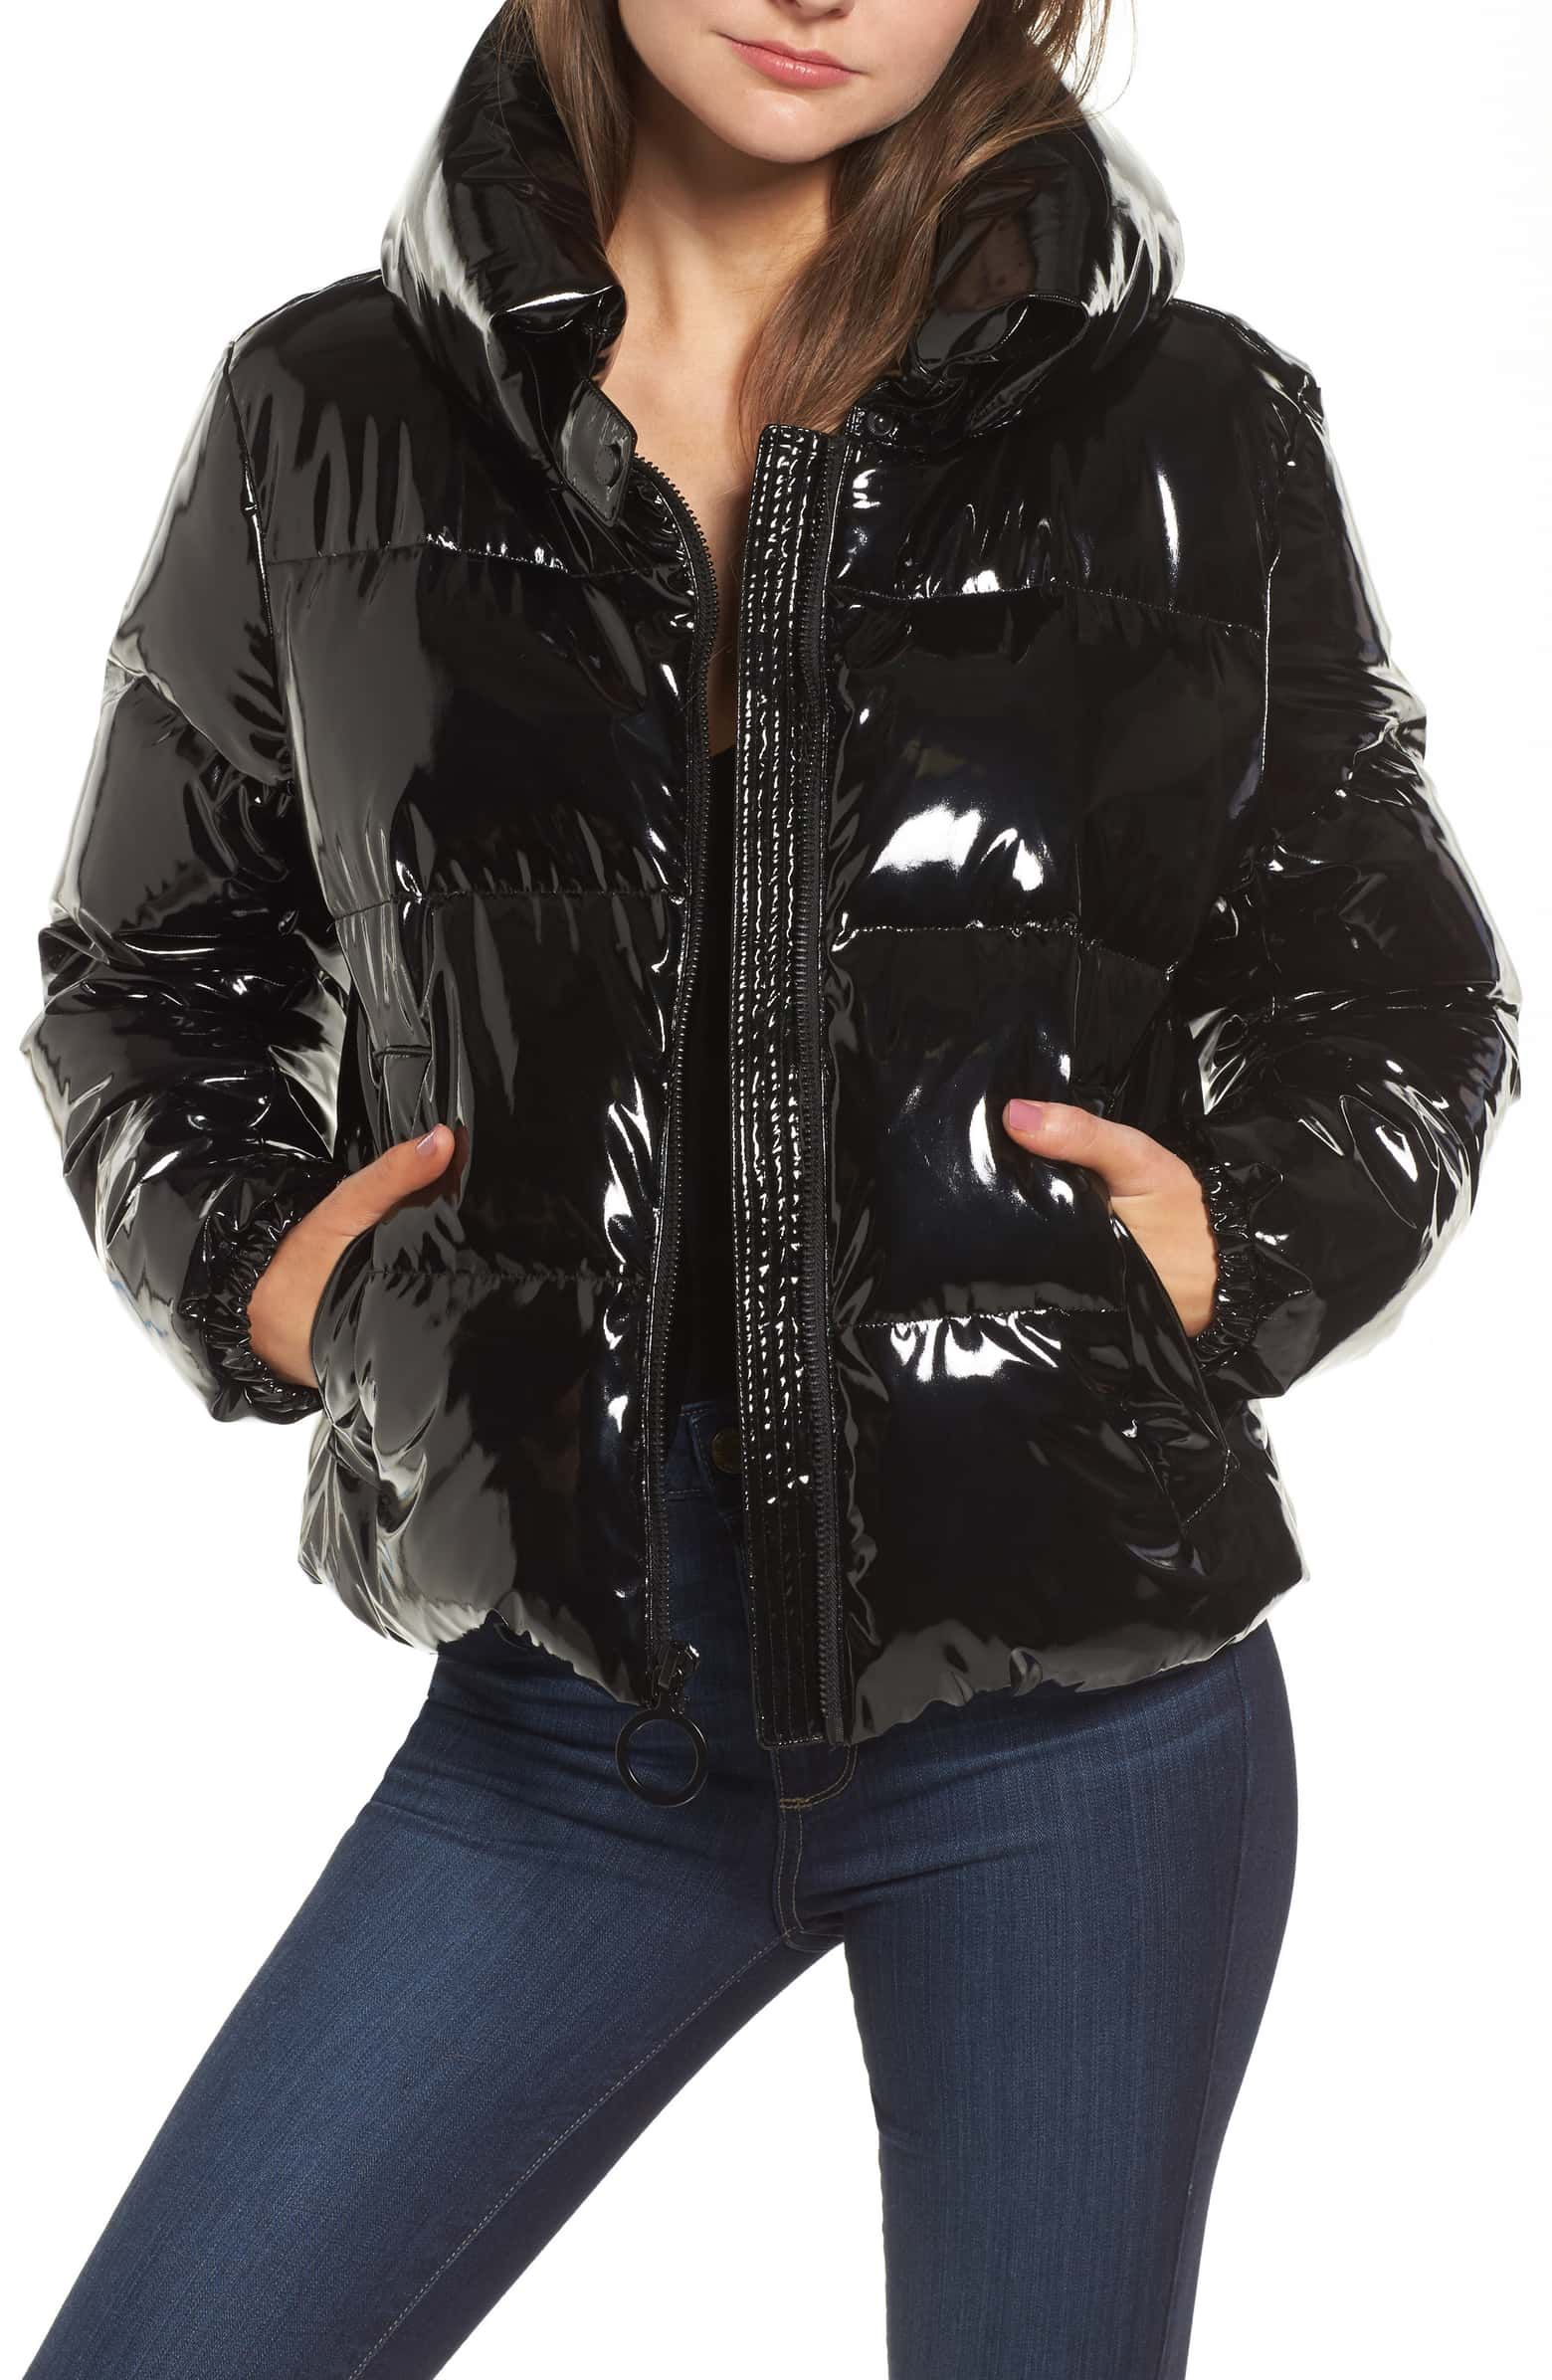 Kendall Kylie Shiny Puffer Jacket Nordstrom Shiny Jacket Jackets Puffer Jackets [ 2392 x 1560 Pixel ]